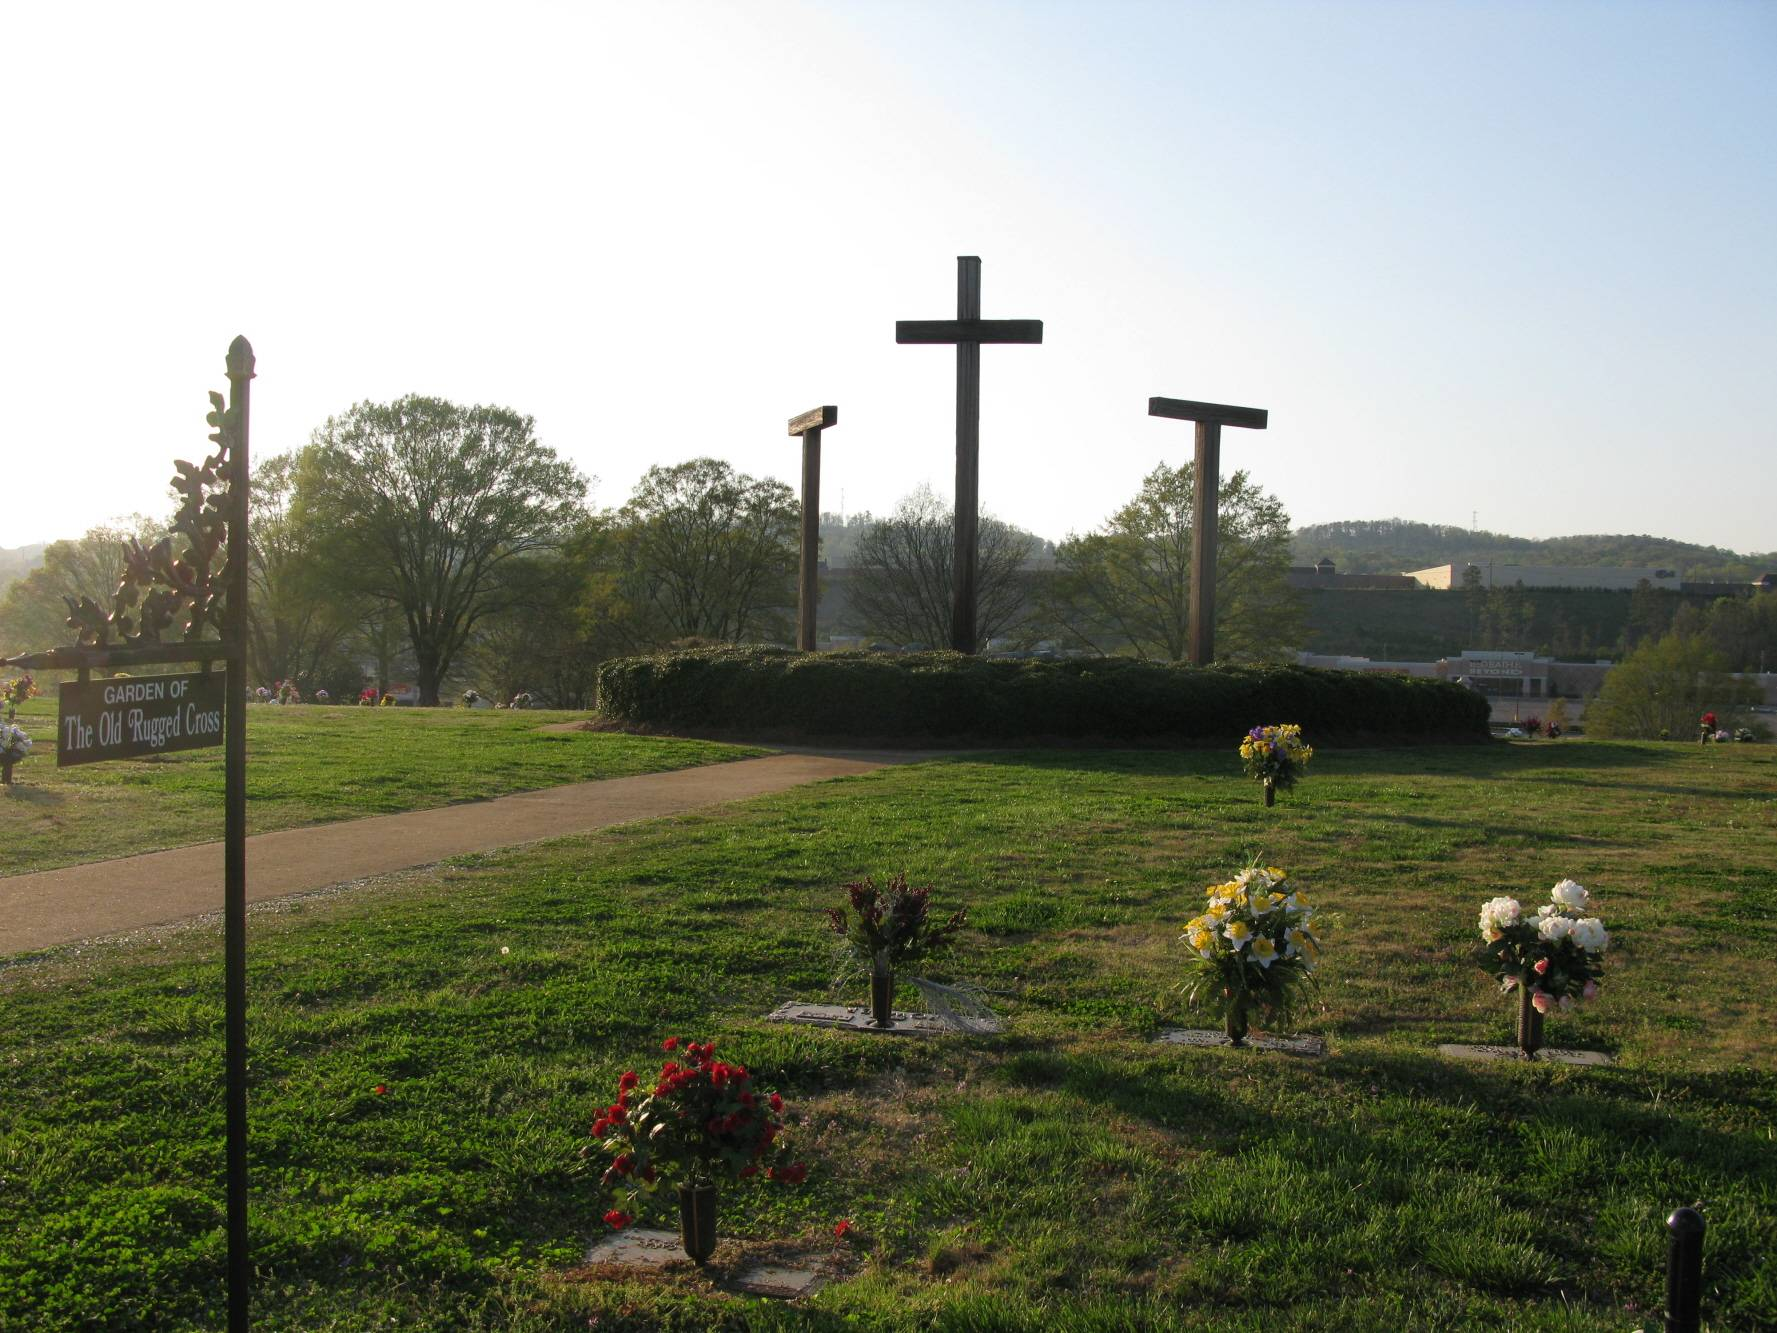 Garden of the Old Rugged Cross A G